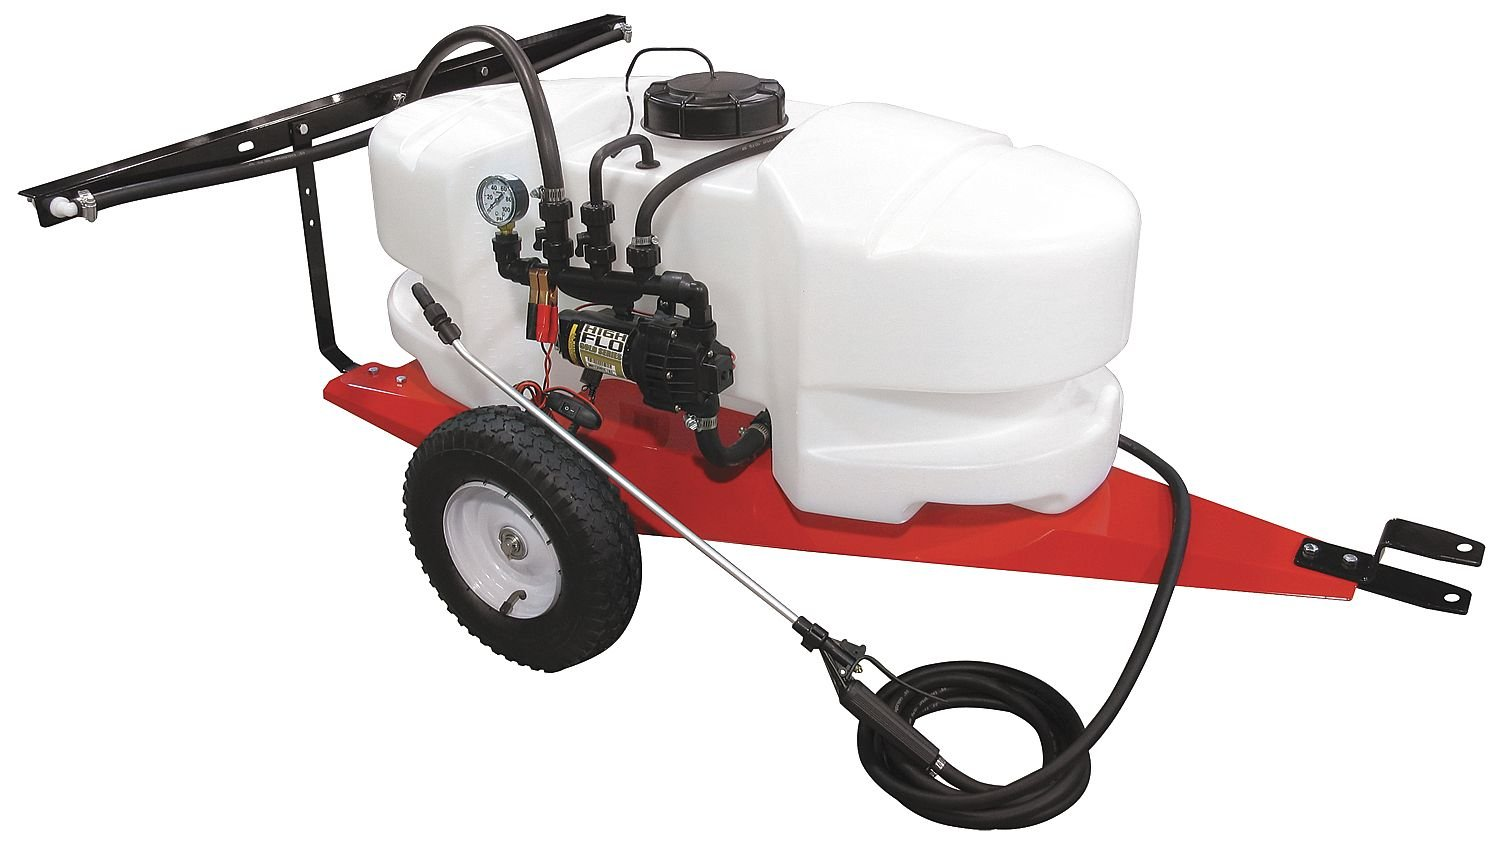 Fimco 25-Gallon Trailer Sprayer